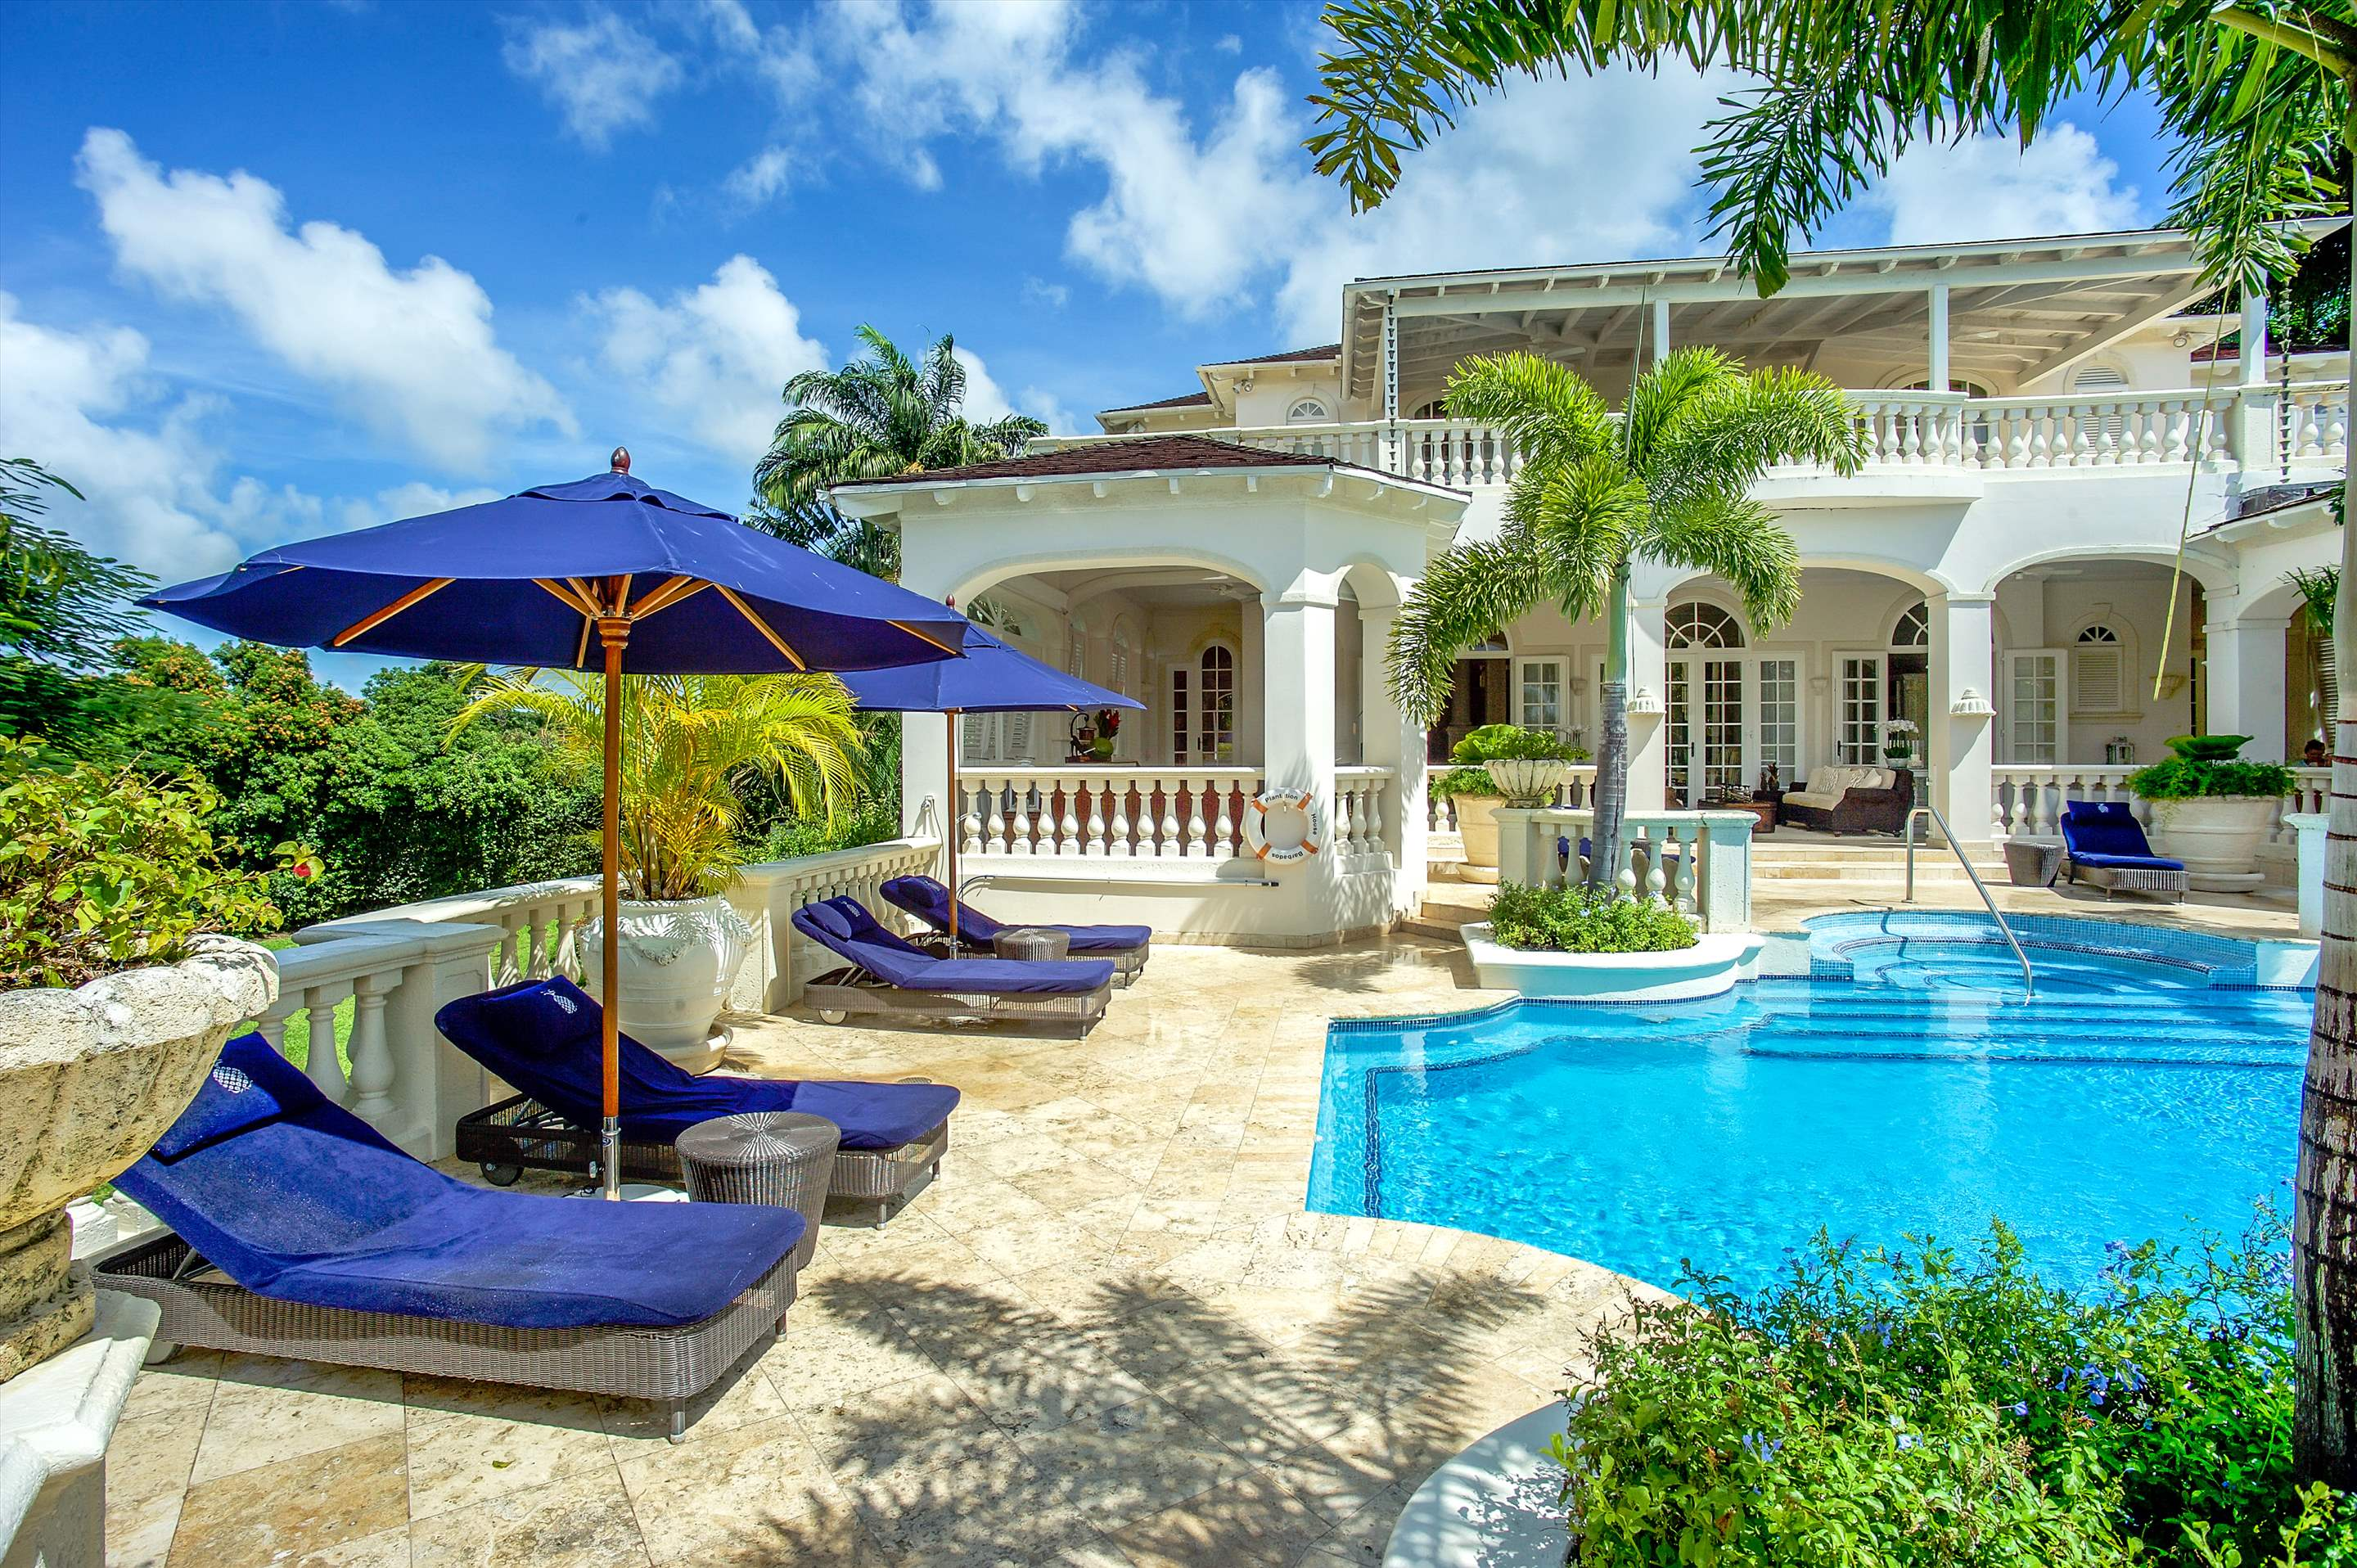 Plantation House, Royal Westmoreland, 6 bedroom, 6 bedroom villa in St. James & West Coast, Barbados Photo #22